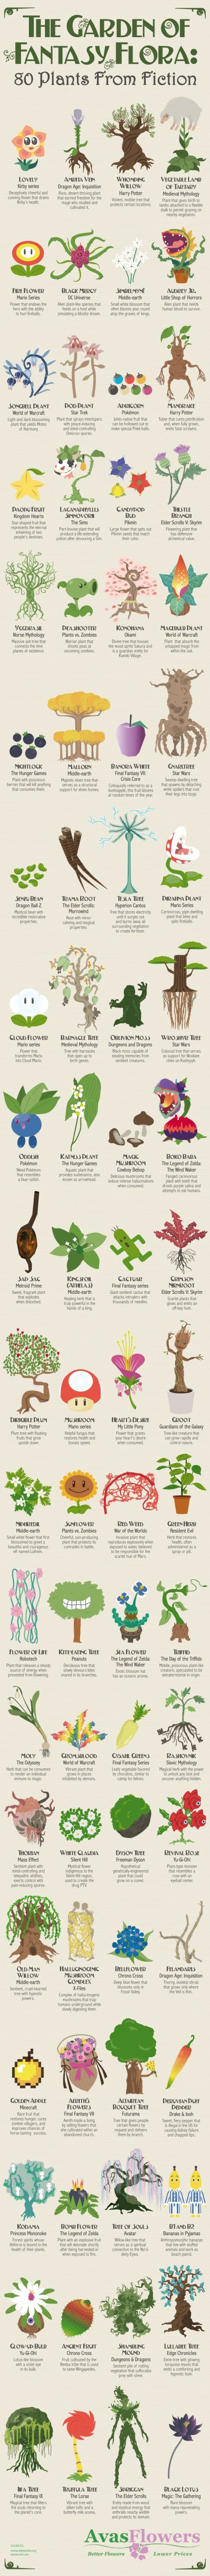 Famous-plants-from-fiction-infographic